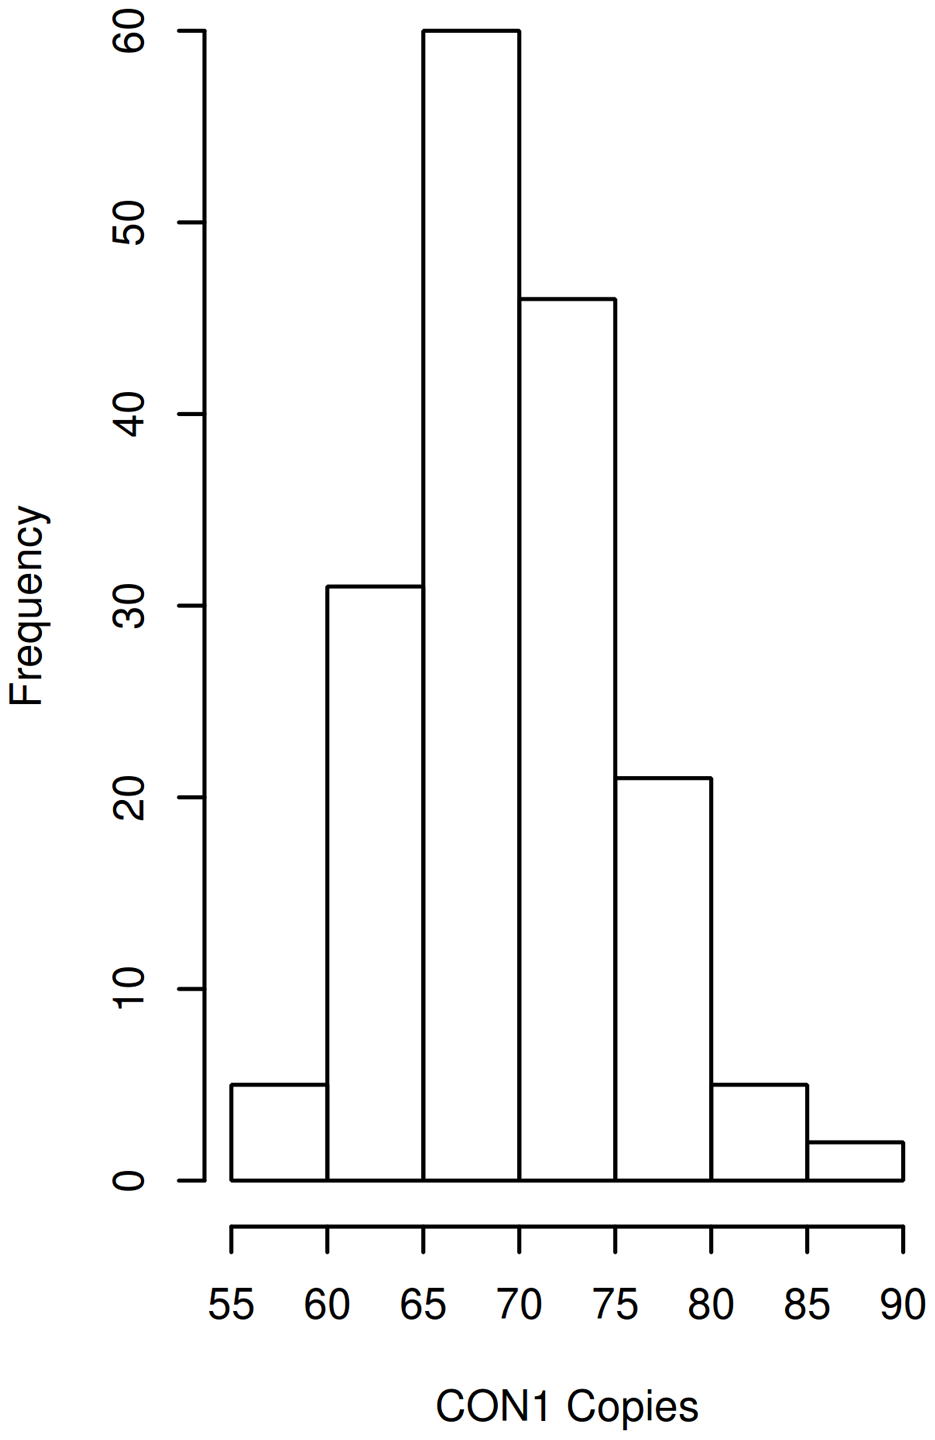 DUF1220 CON1 copy number distribution in individuals with ASD.